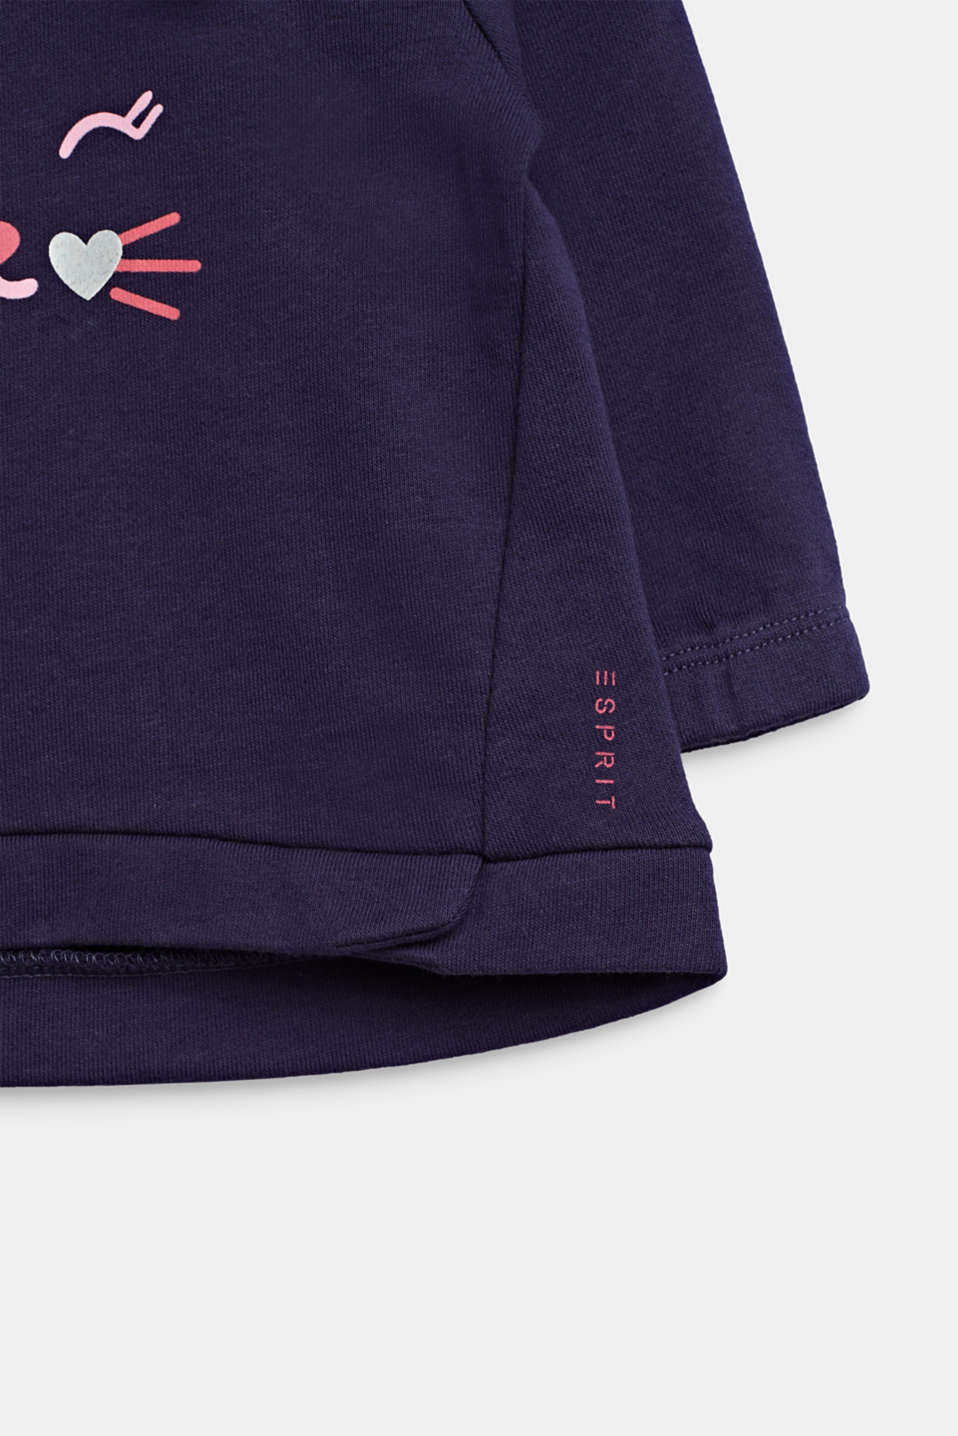 Cat face sweatshirt, 100% cotton, LCMIDNIGHT BLUE, detail image number 3